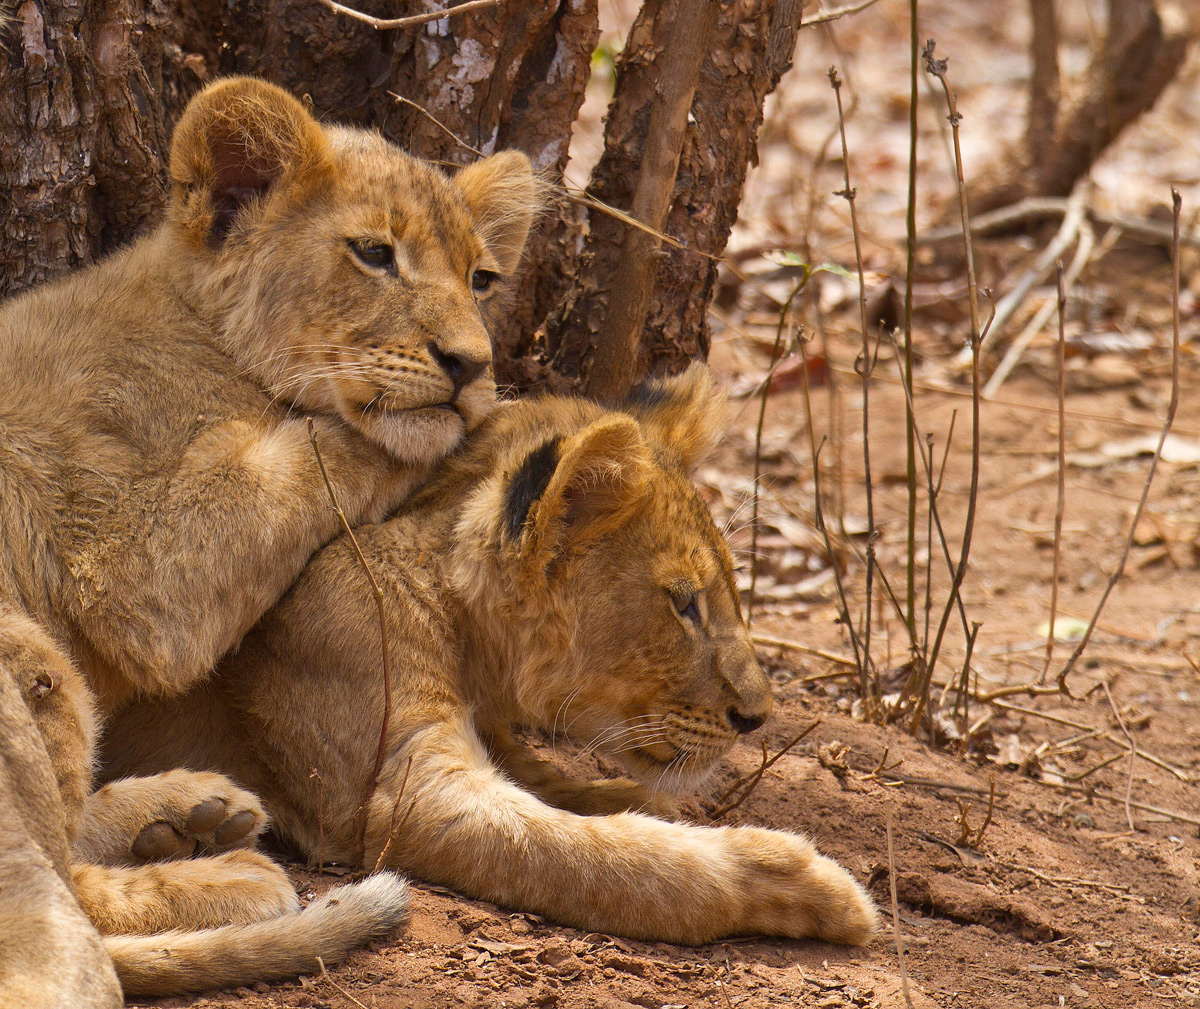 """Bonded for life"" – lion cubs share a tender moment in Lower Zambezi National Park, Zambia © Edward Rogowski"